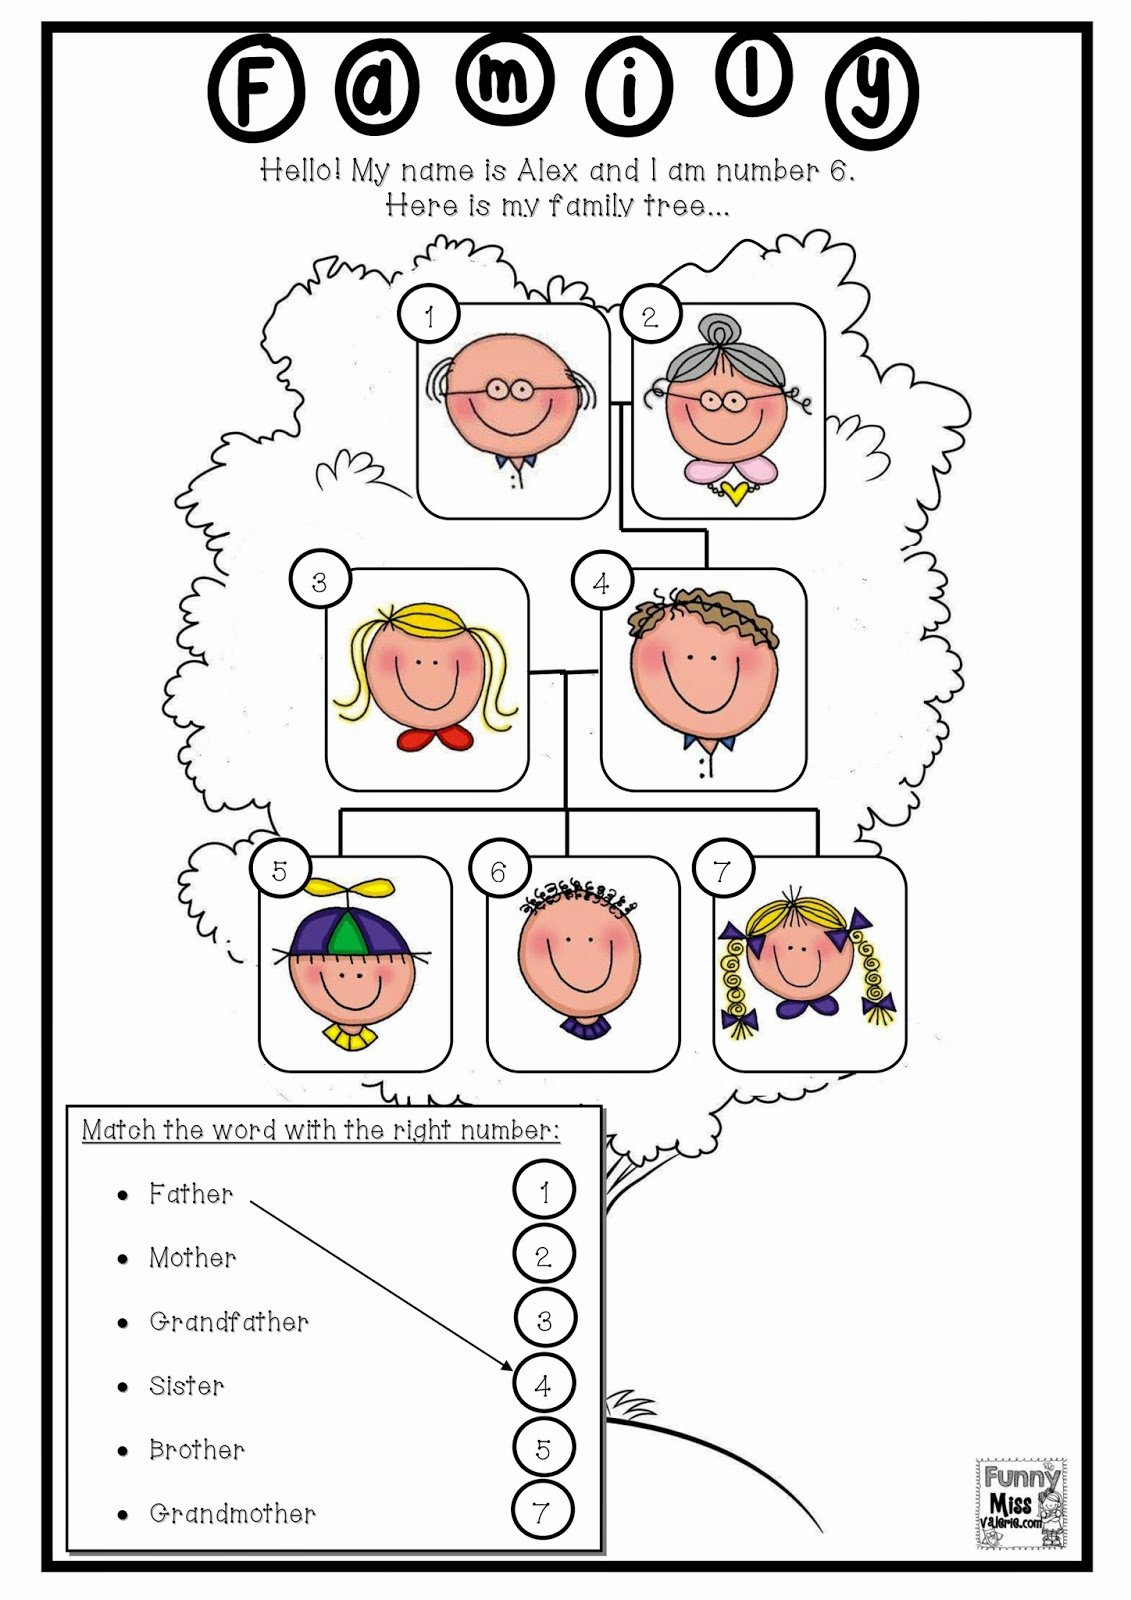 Family Tree Worksheet Printable Best Of Funny Miss Valérie My Family